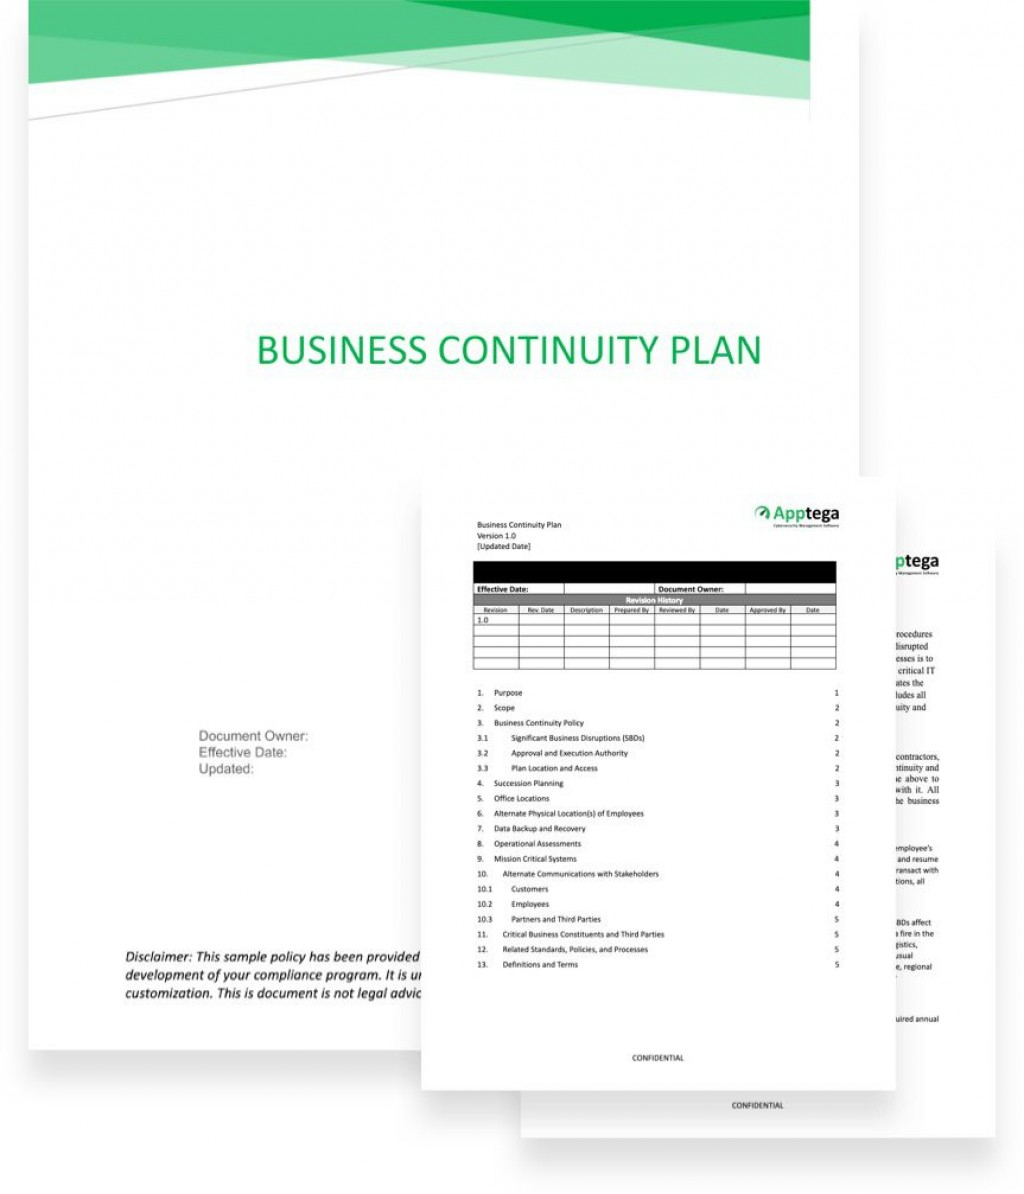 005 Fantastic Simple Busines Continuity Plan Template High Def  Australia Sample For Small Businesse Basic ExampleLarge